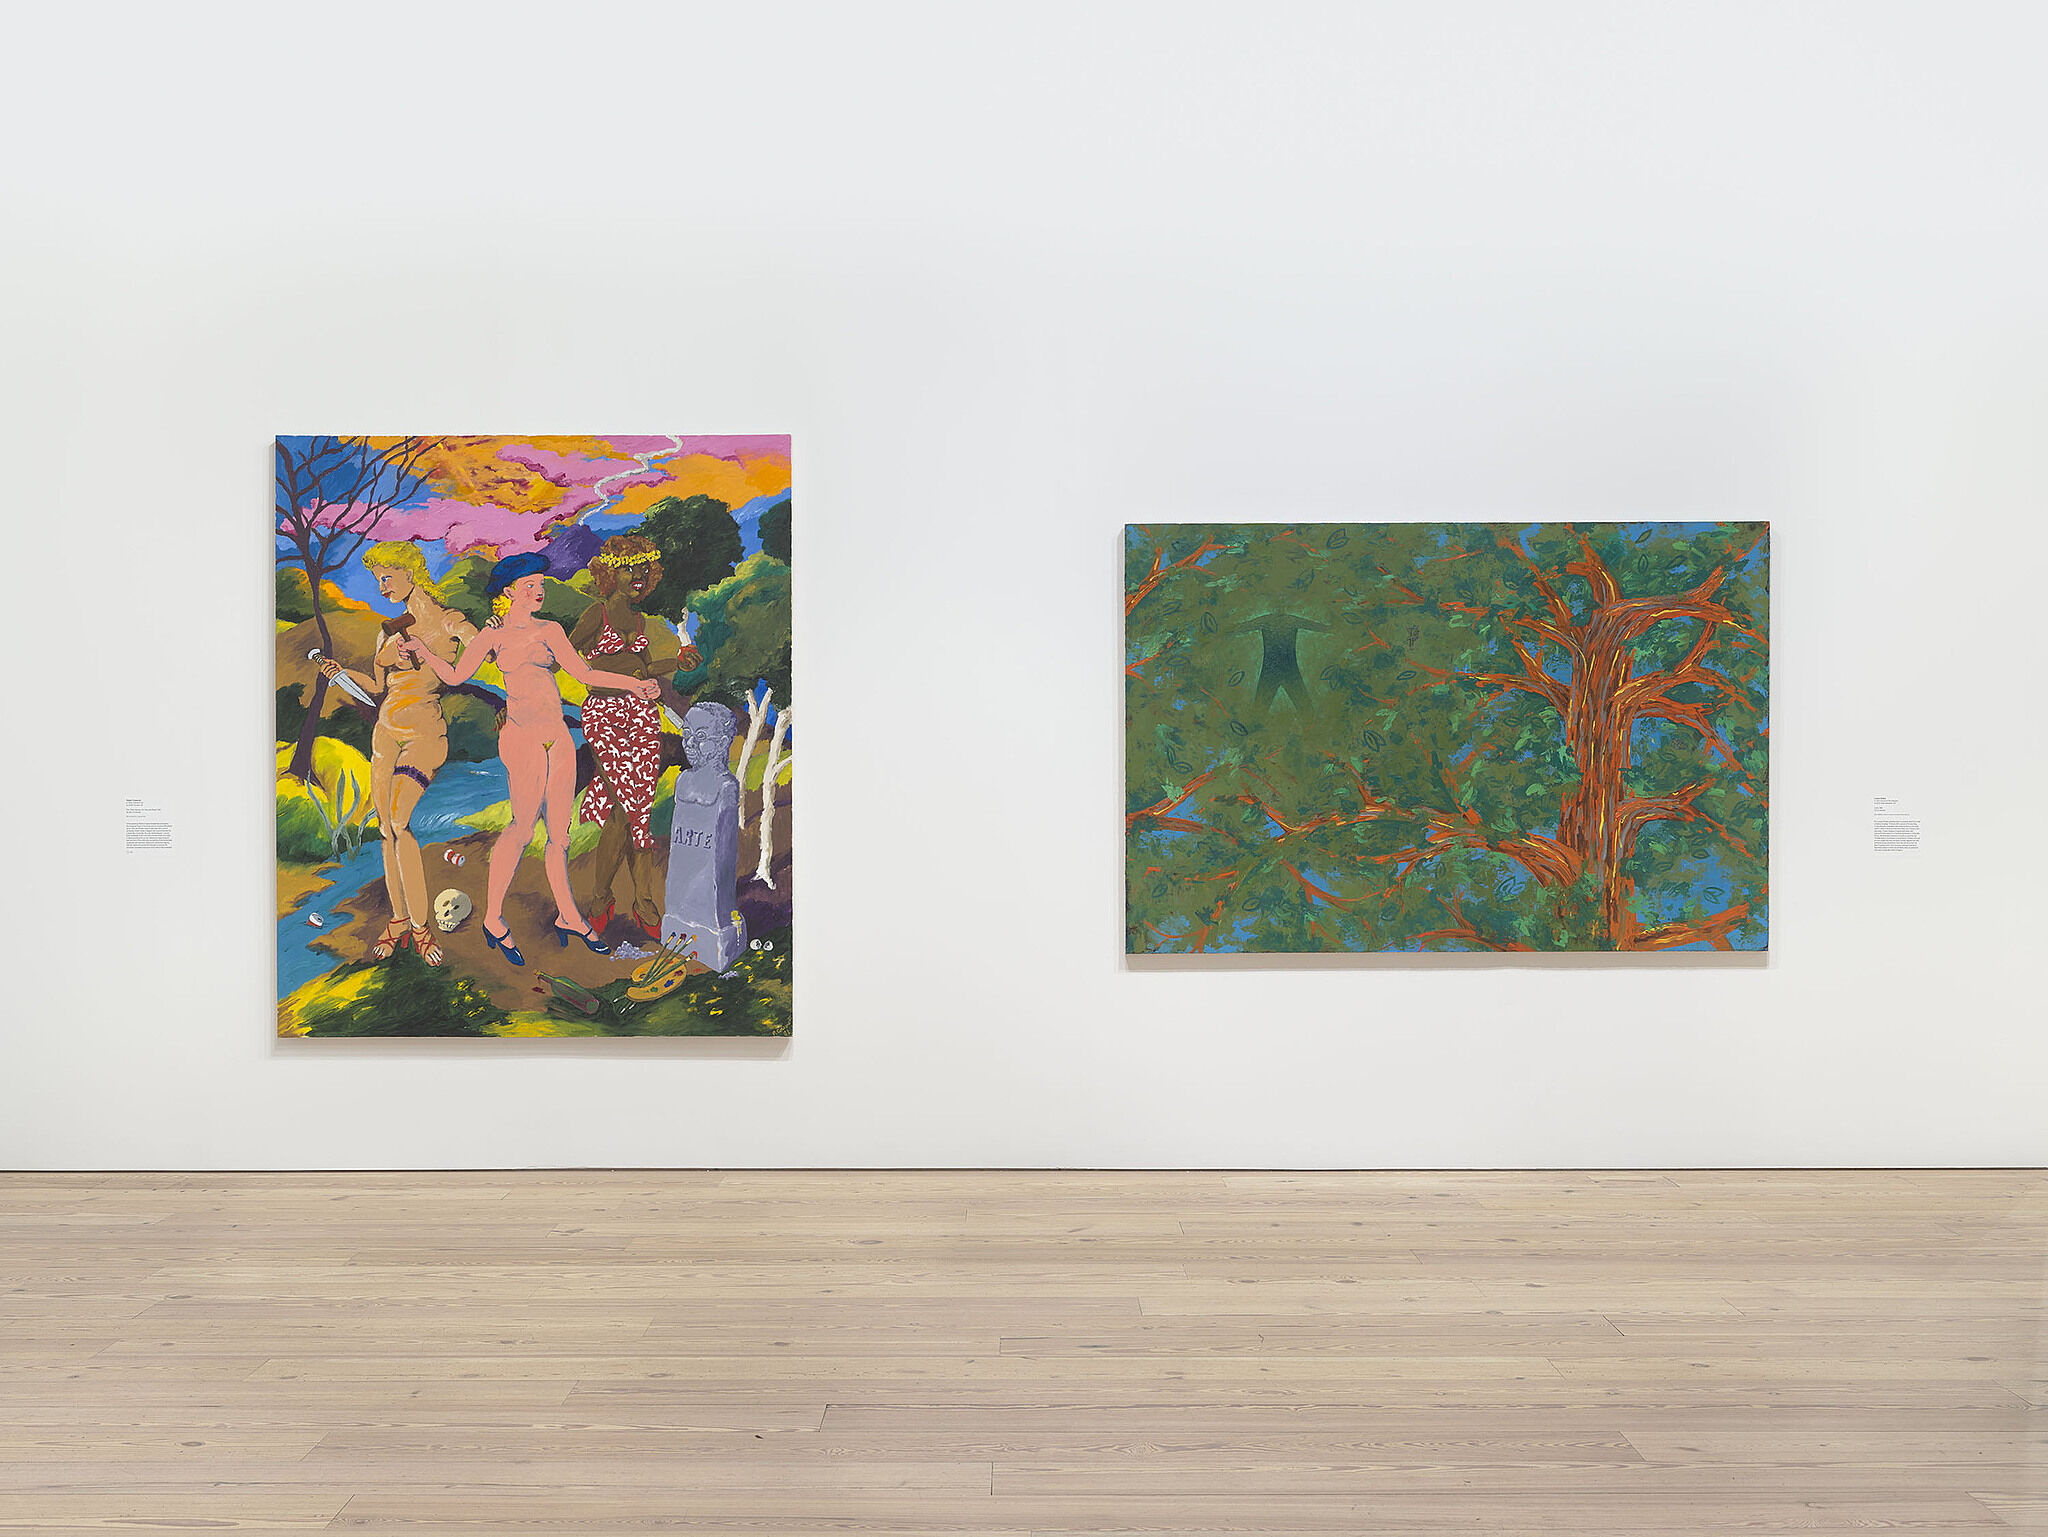 Two colorful paintings hanging side by side.